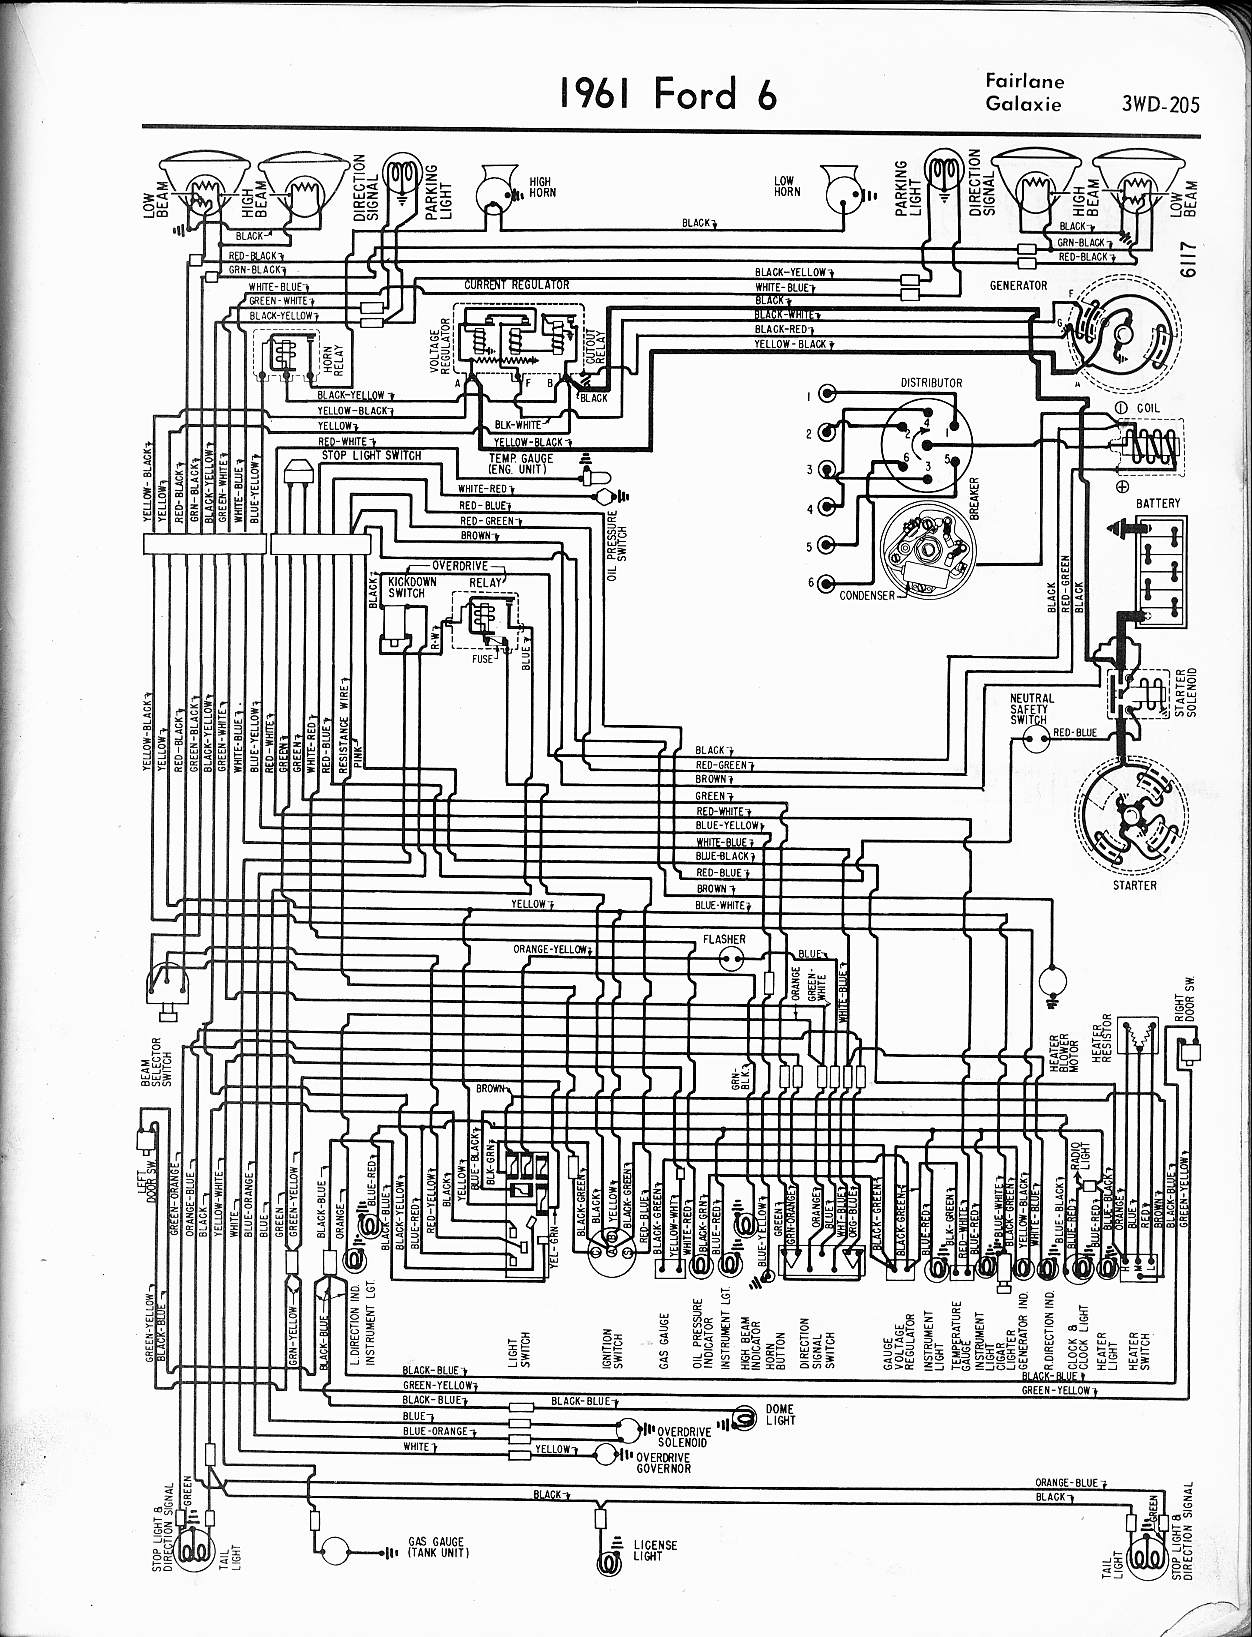 MWire5765 205 wiring diagram model a ford the wiring diagram readingrat net free wiring diagrams ford at reclaimingppi.co